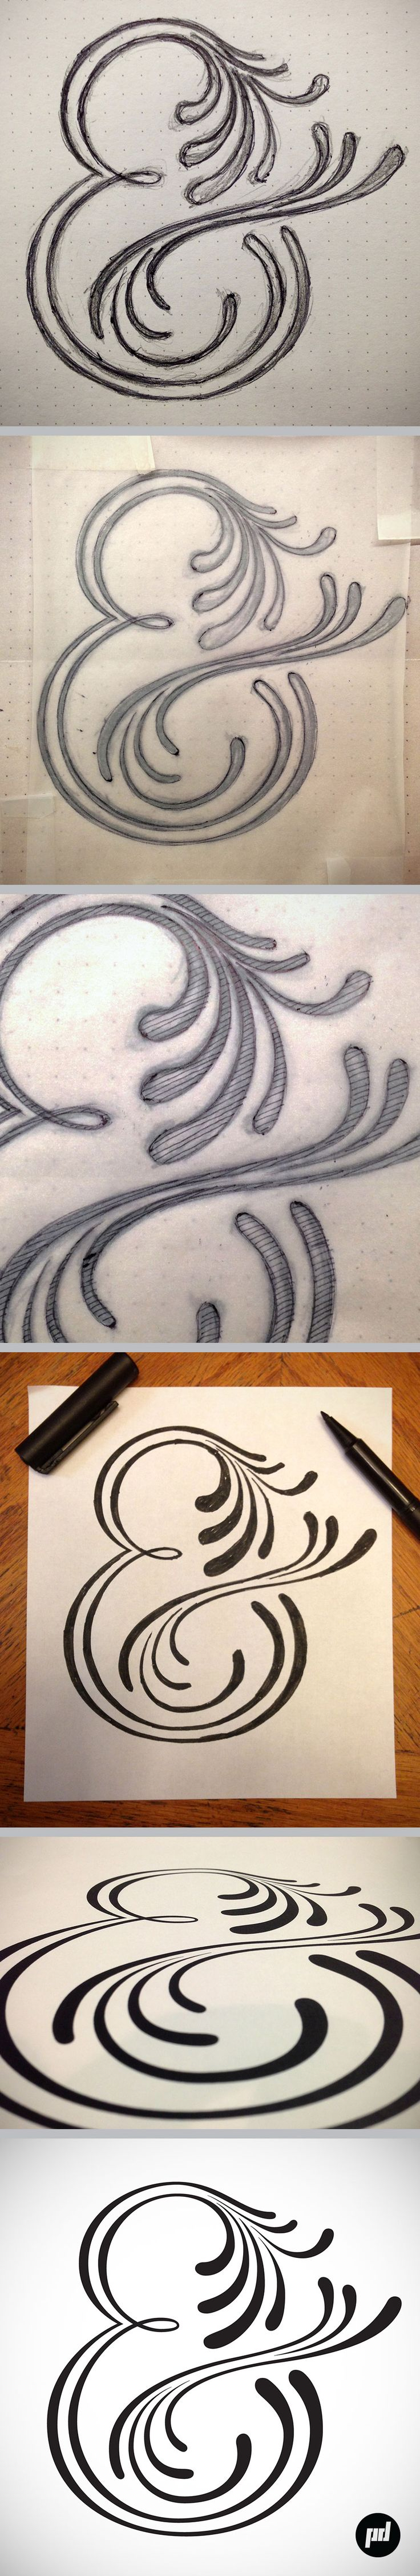 Amperos font, full process 4, hand lettered ampersand series, by Petre Spassov